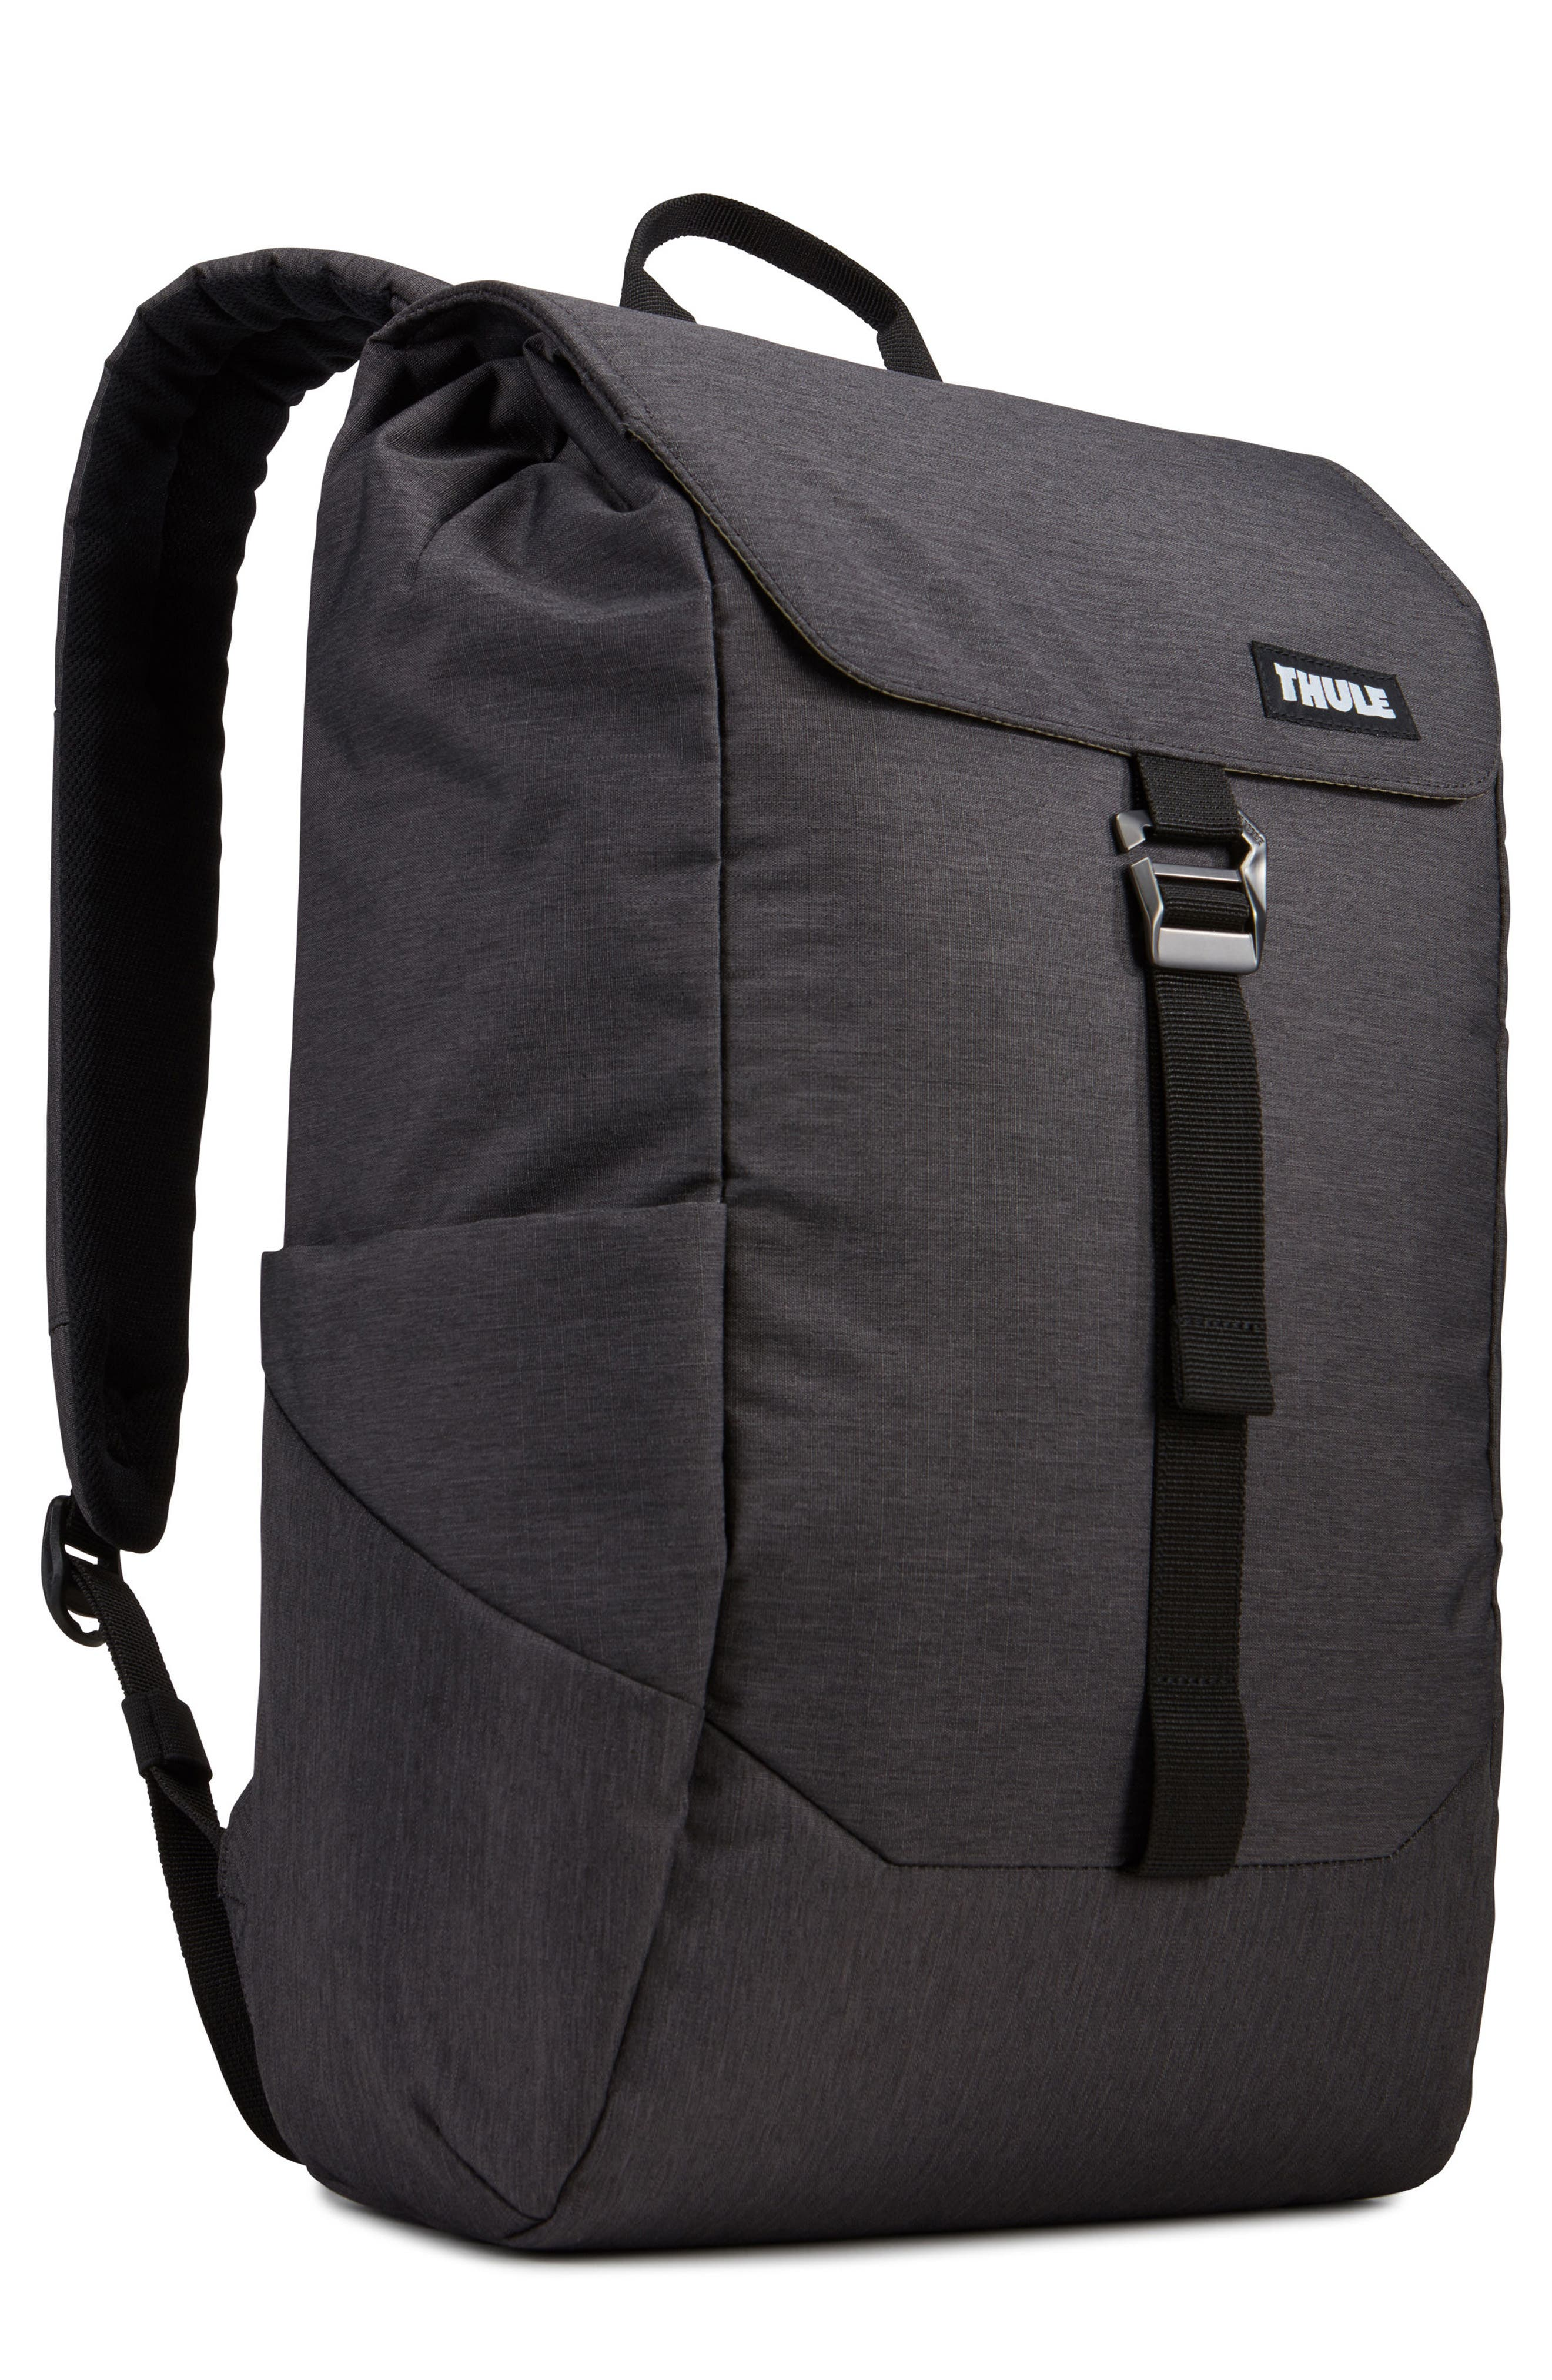 Lithos Backpack,                             Main thumbnail 1, color,                             BLACK